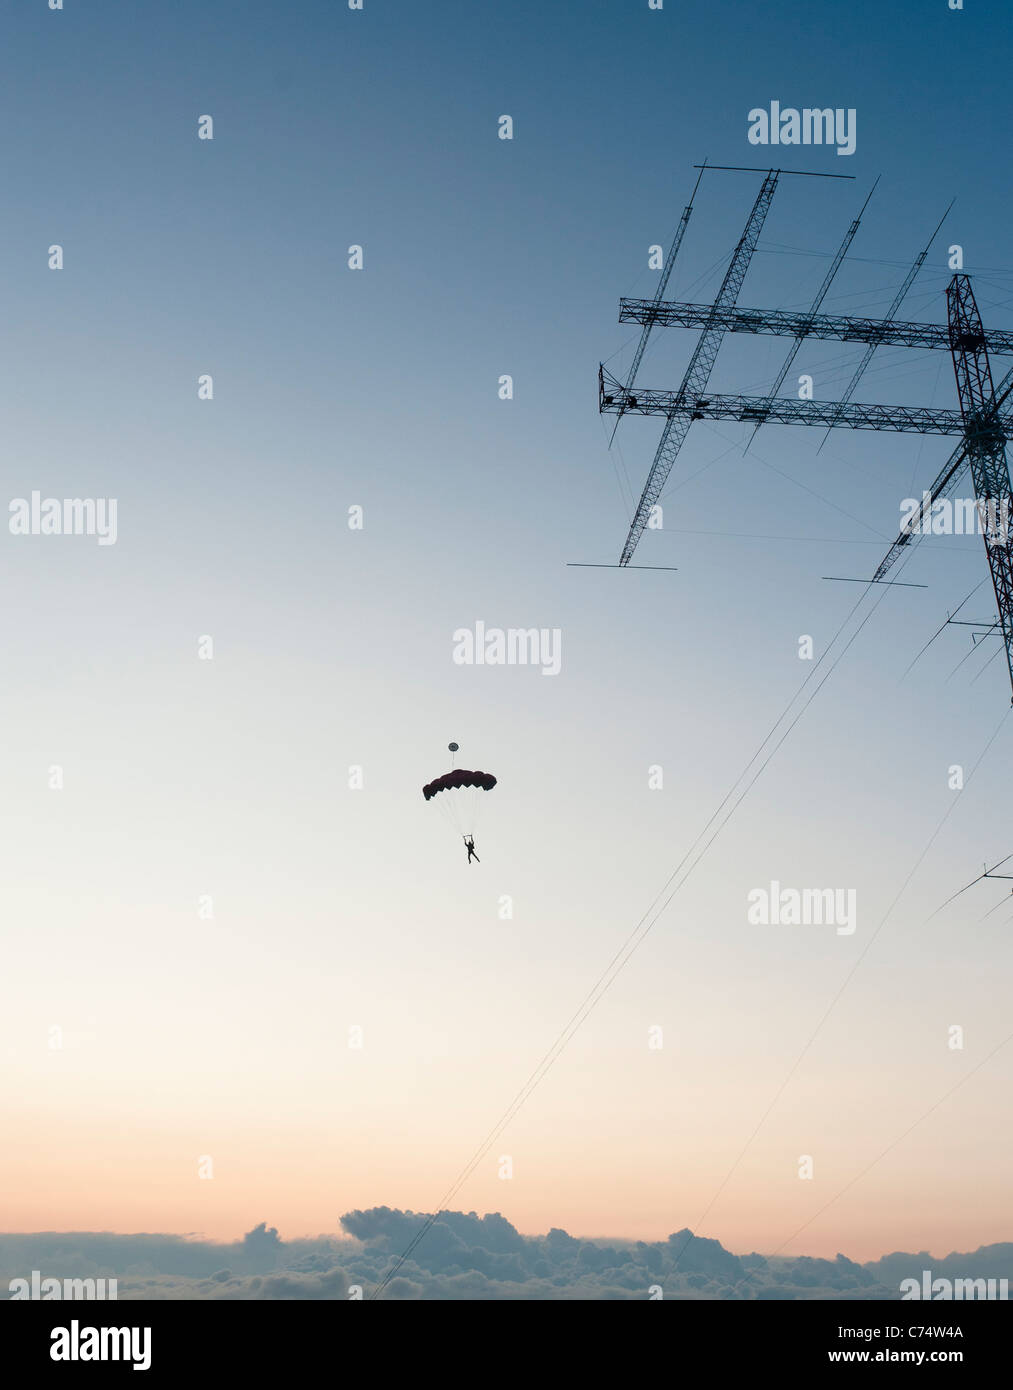 A base jumper jumping from an radio amateur antenna in the midnight sun. Radio Arcala, Oulu, Finland - Stock Image